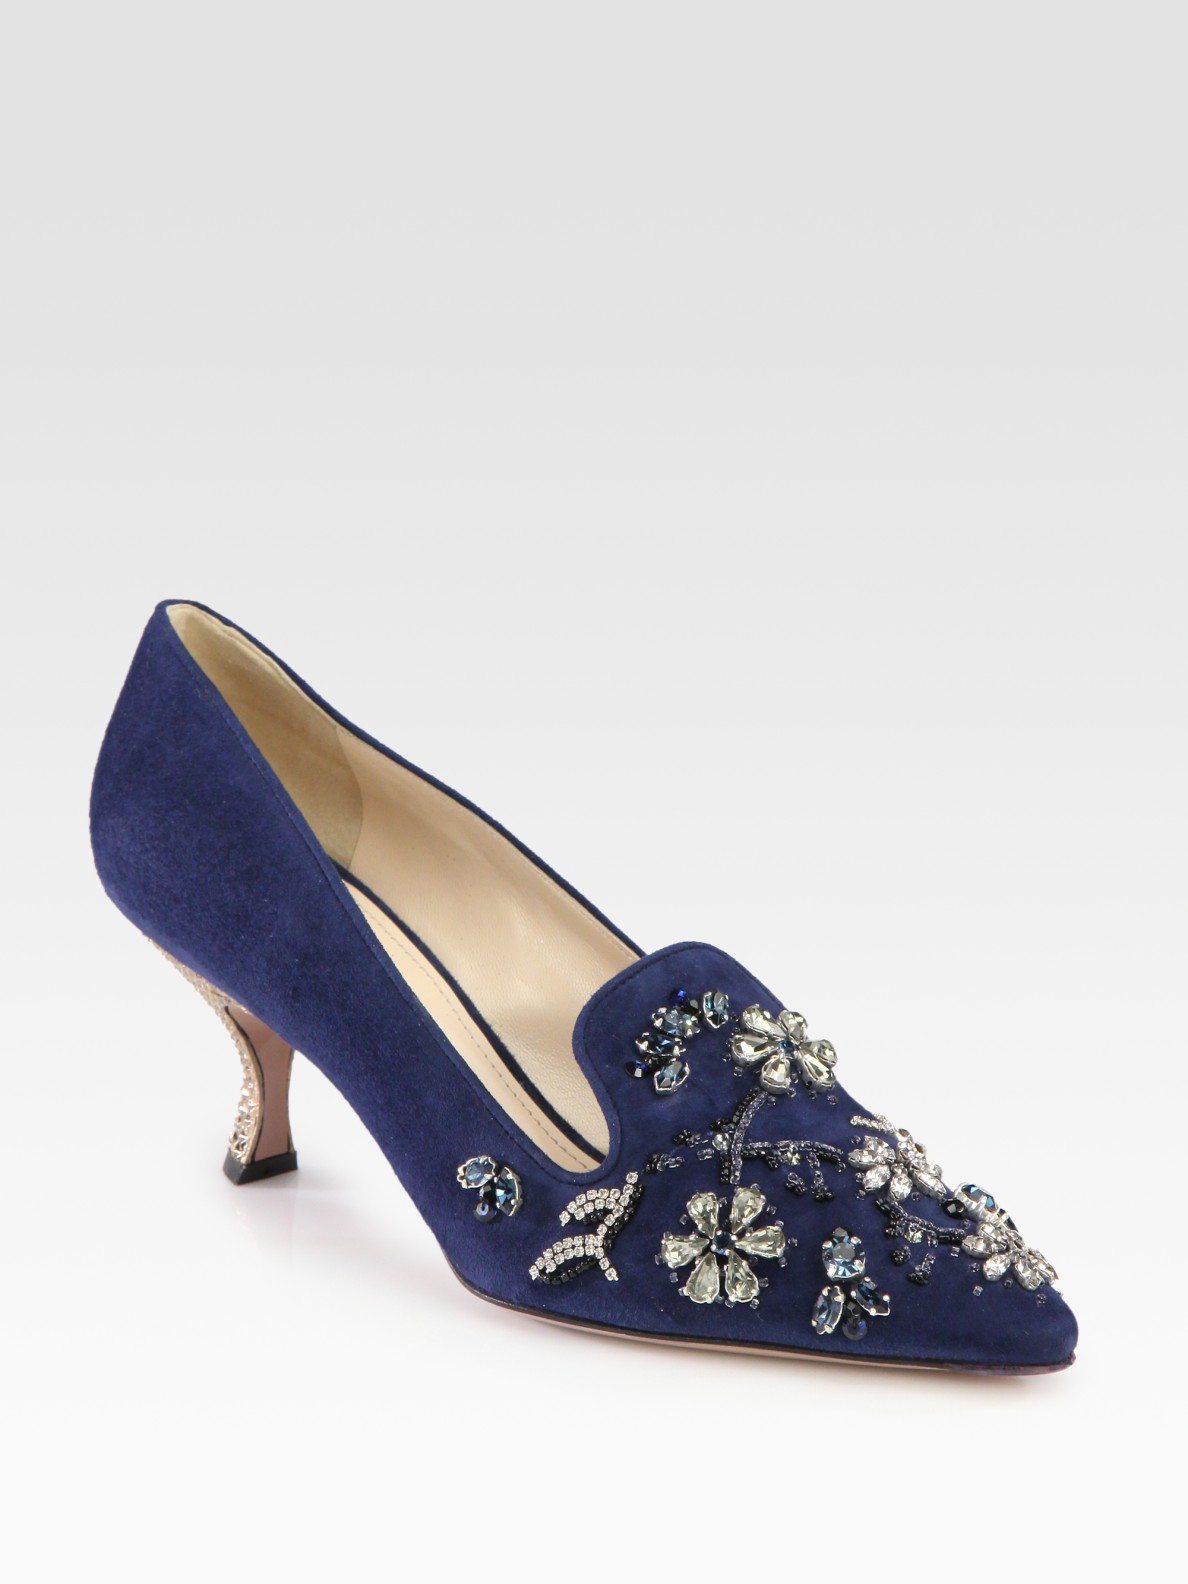 Prada Jewel-Embellished Pointed-Toe Pumps sale top quality cost cheap online cheap sale really buy online new YJBlrXR